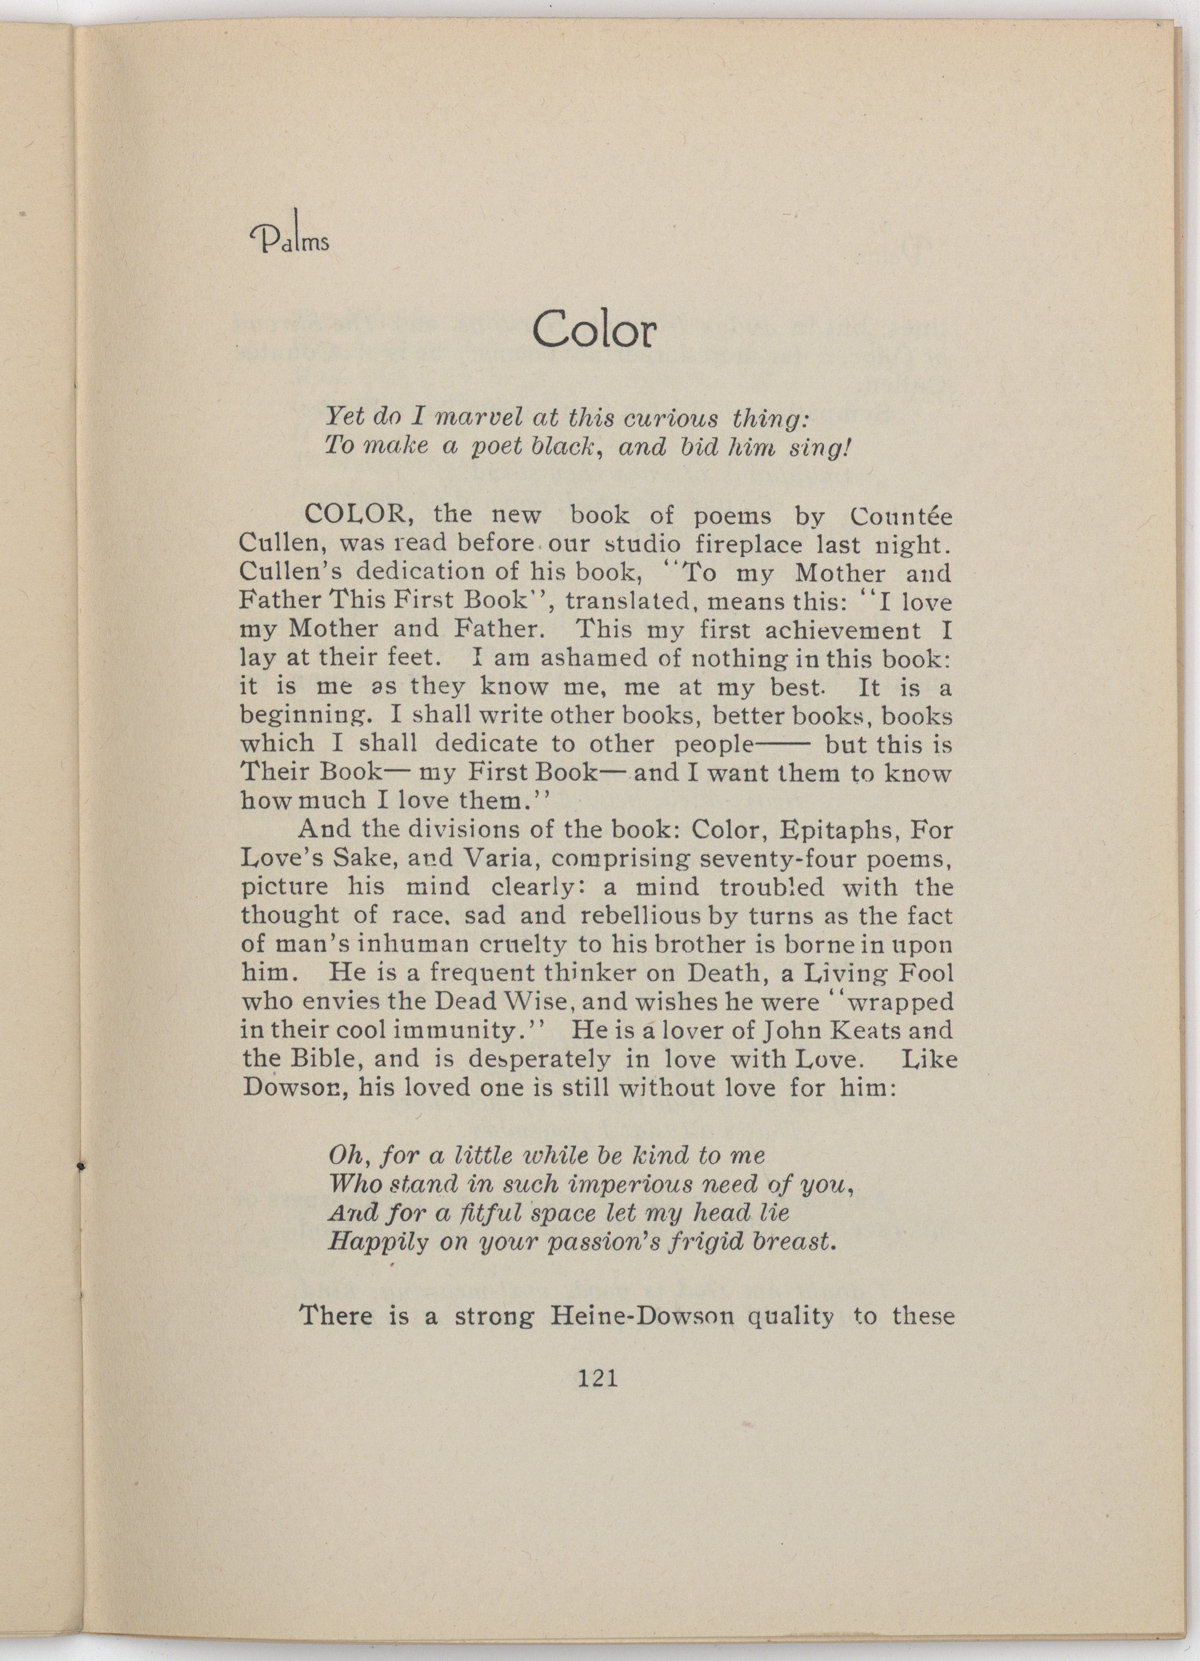 The first page of John Weatherwax's review of Color from the January 1926 issue of Palms.